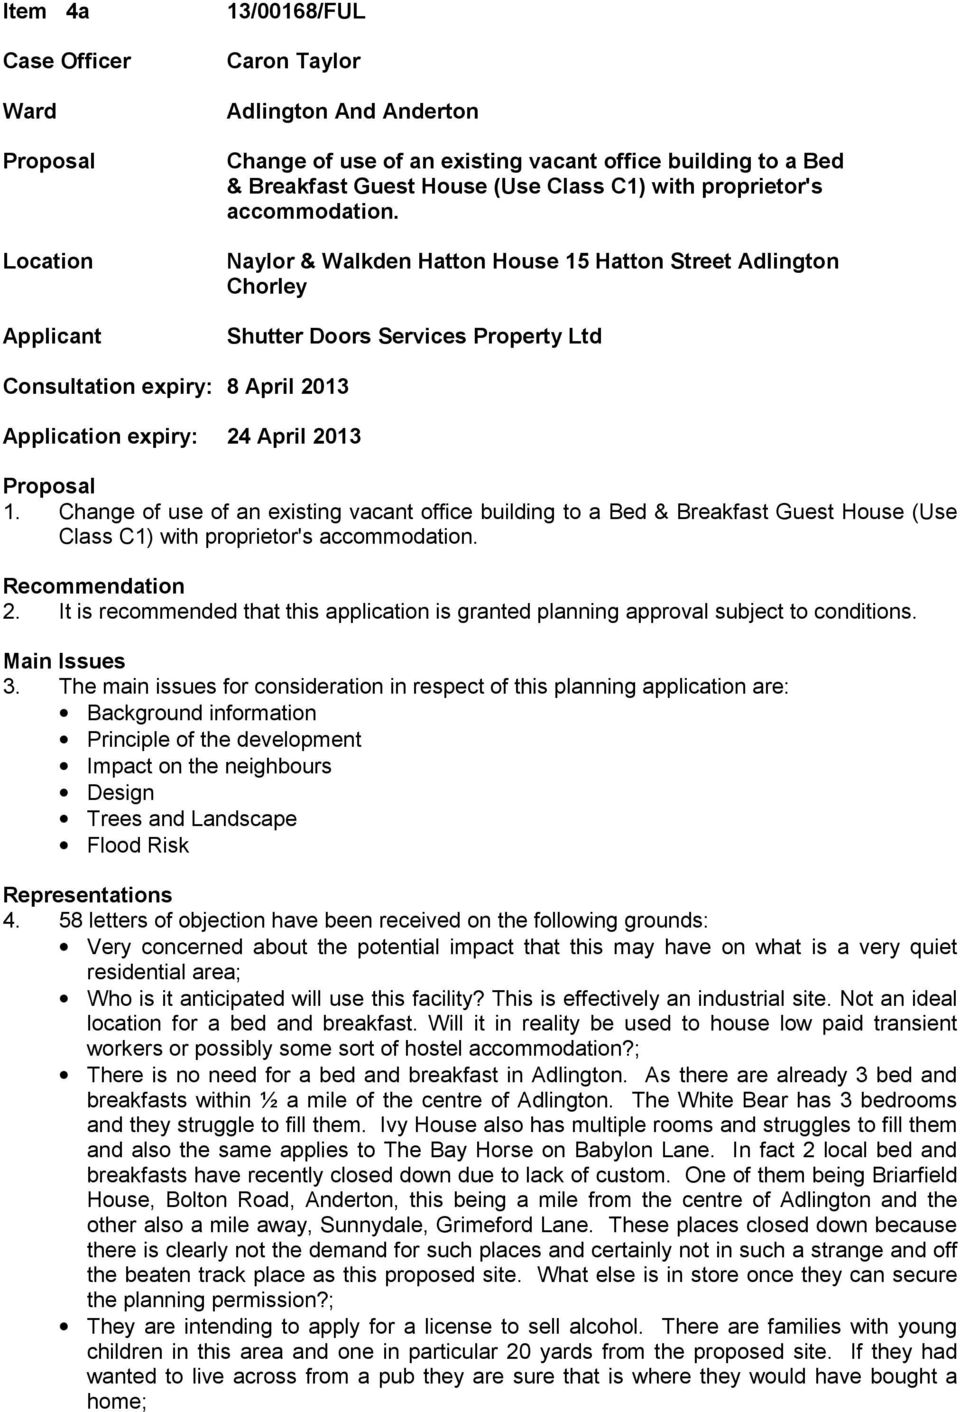 Naylor & Walkden Hatton House 15 Hatton Street Adlington Chorley Shutter Doors Services Property Ltd Consultation expiry: 8 April 2013 Application expiry: 24 April 2013 Proposal 1.